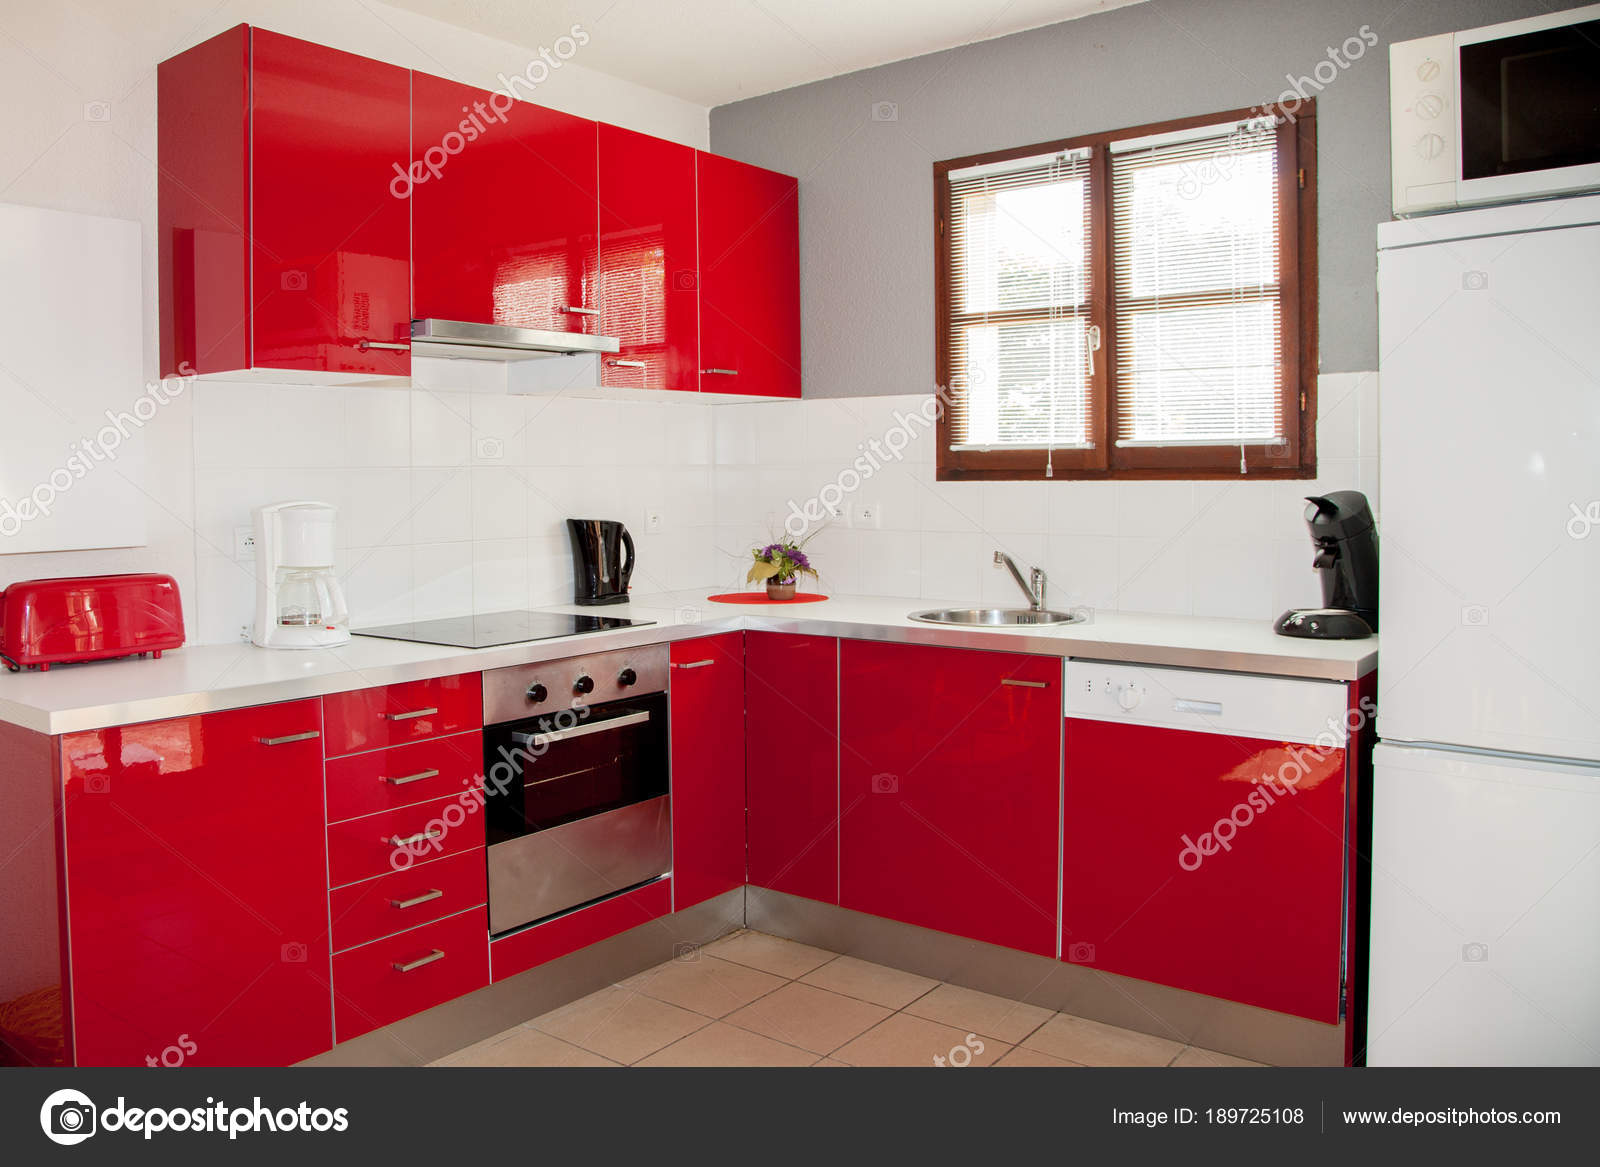 Picture Studio Containing Red Small Kitchen Sink Microwave Stock Photo C Oceanprod 189725108